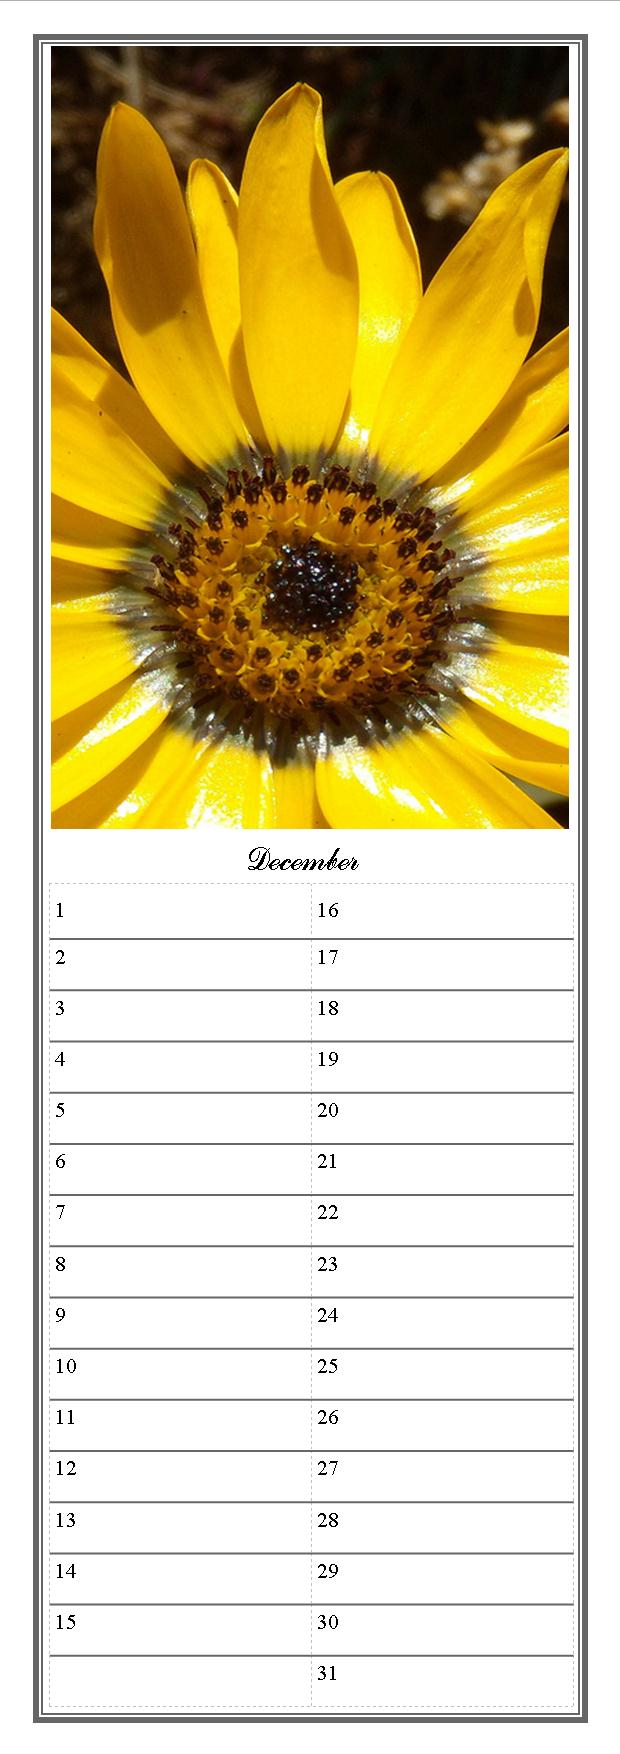 Fun Observances Dates To Remember | just b.CAUSE